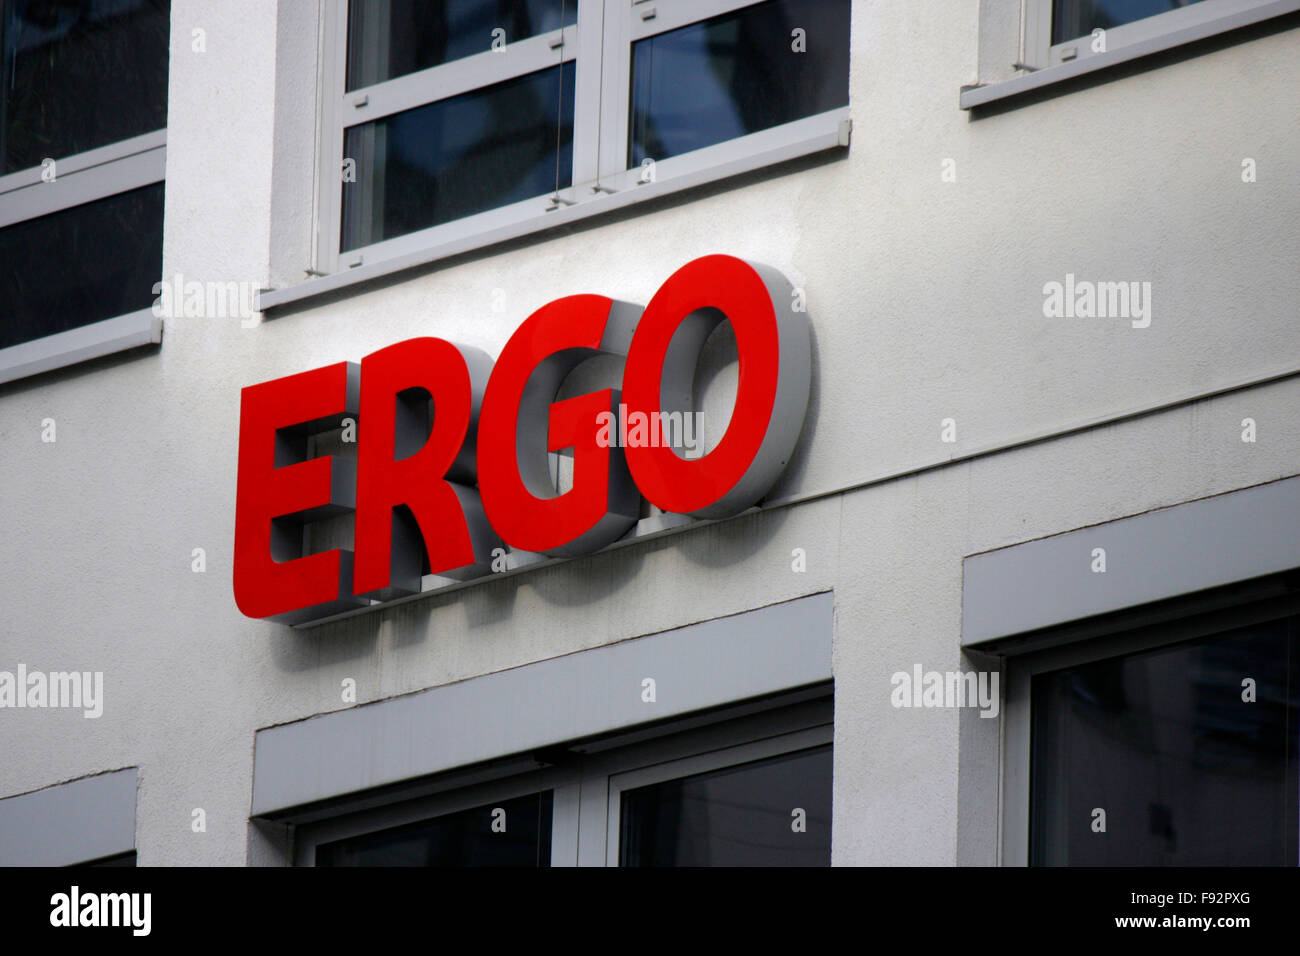 Ergo stock photos ergo stock images alamy for Ergo berlin